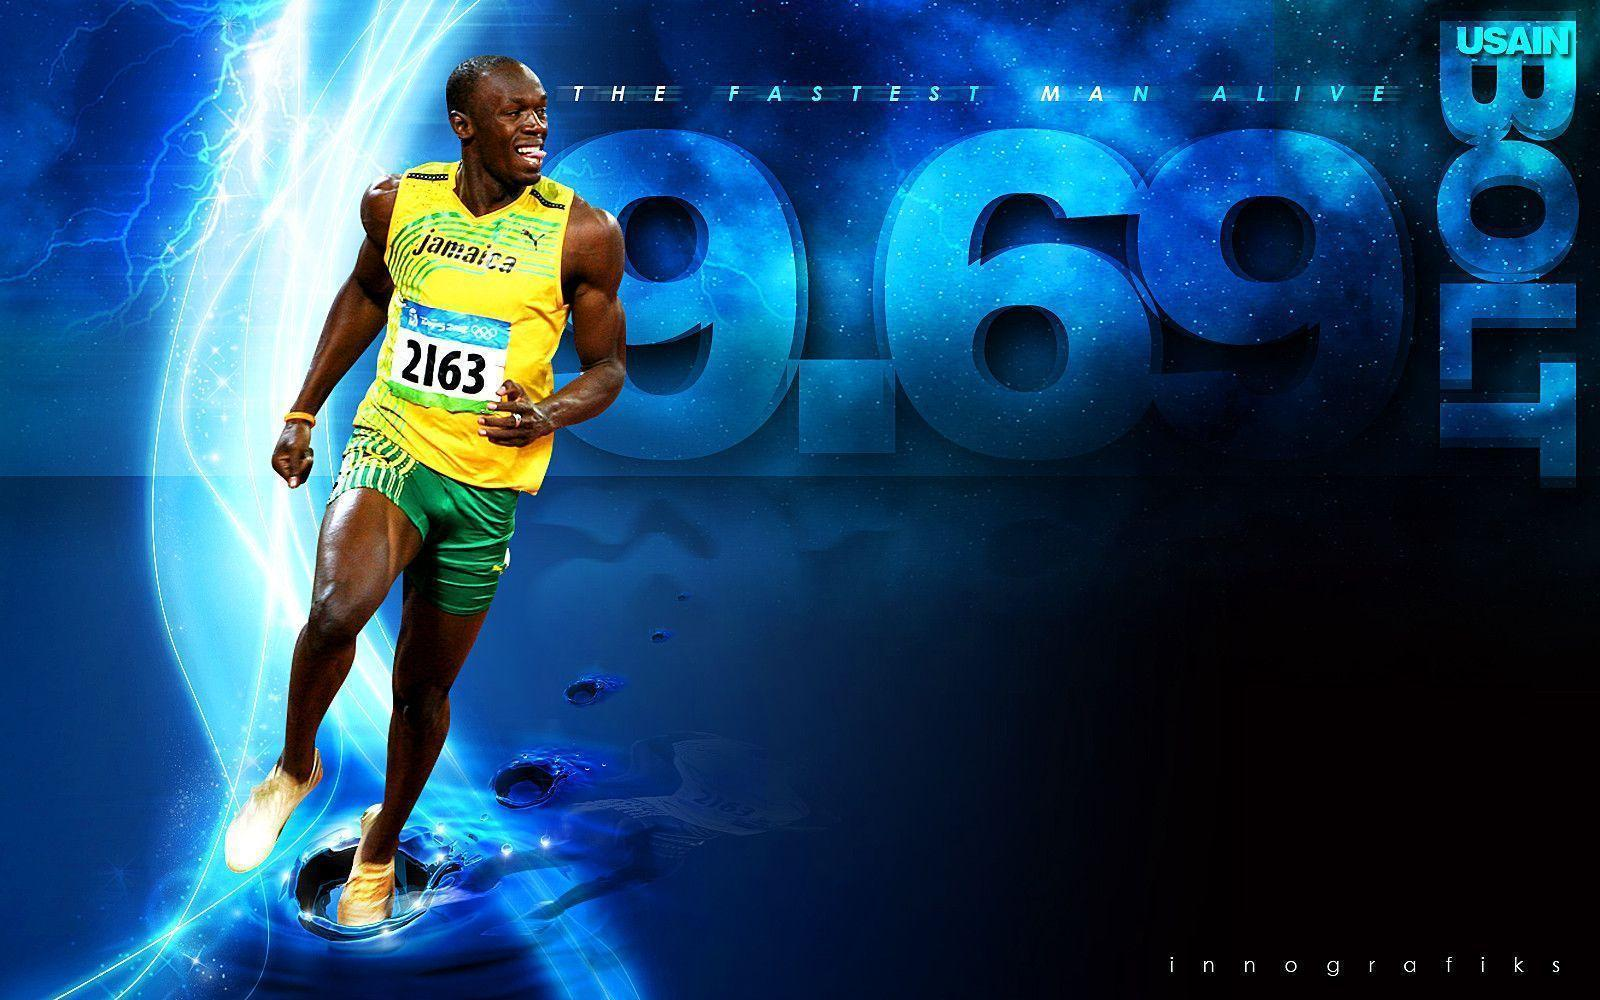 Usain Bolt Wallpapers | HD Wallpapers Base